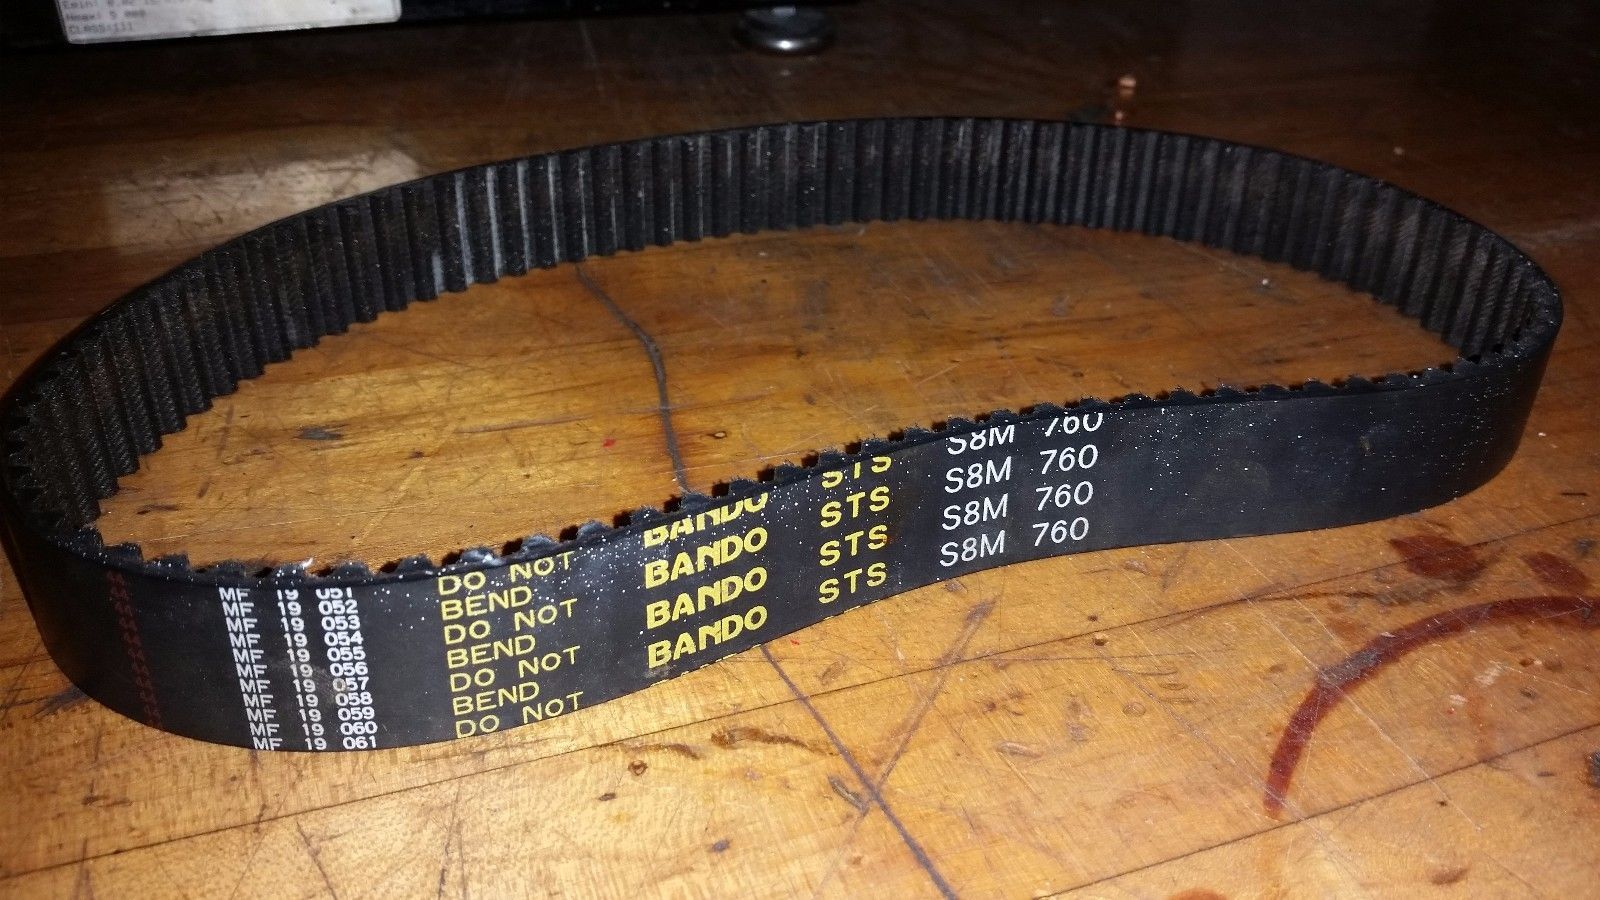 ONE Bando S8M-760 Timing Belt cogged toothed